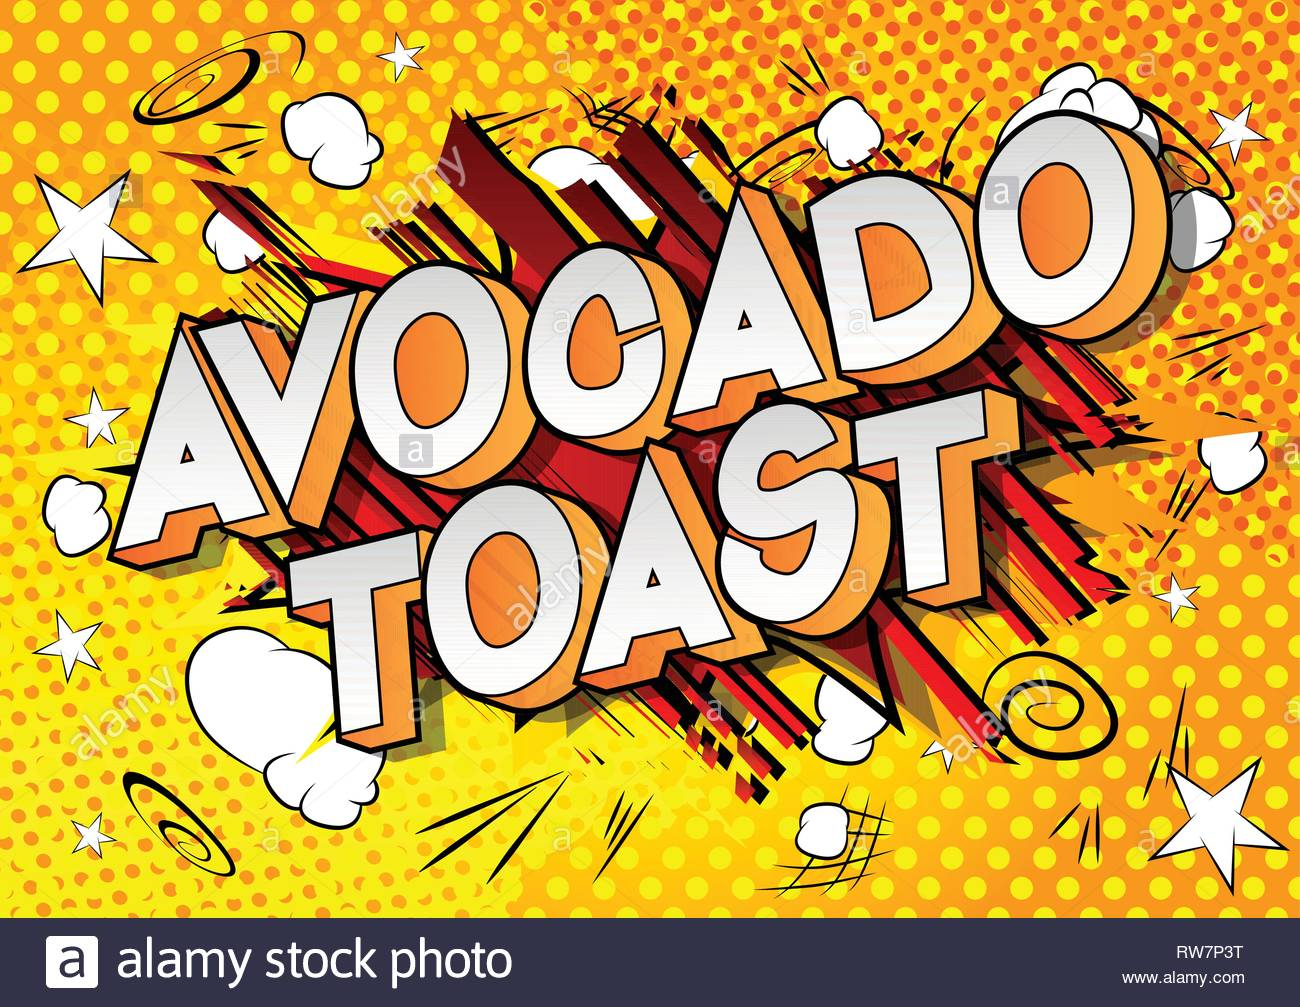 Avocado Toast   Vector illustrated comic book style phrase on 1300x1007